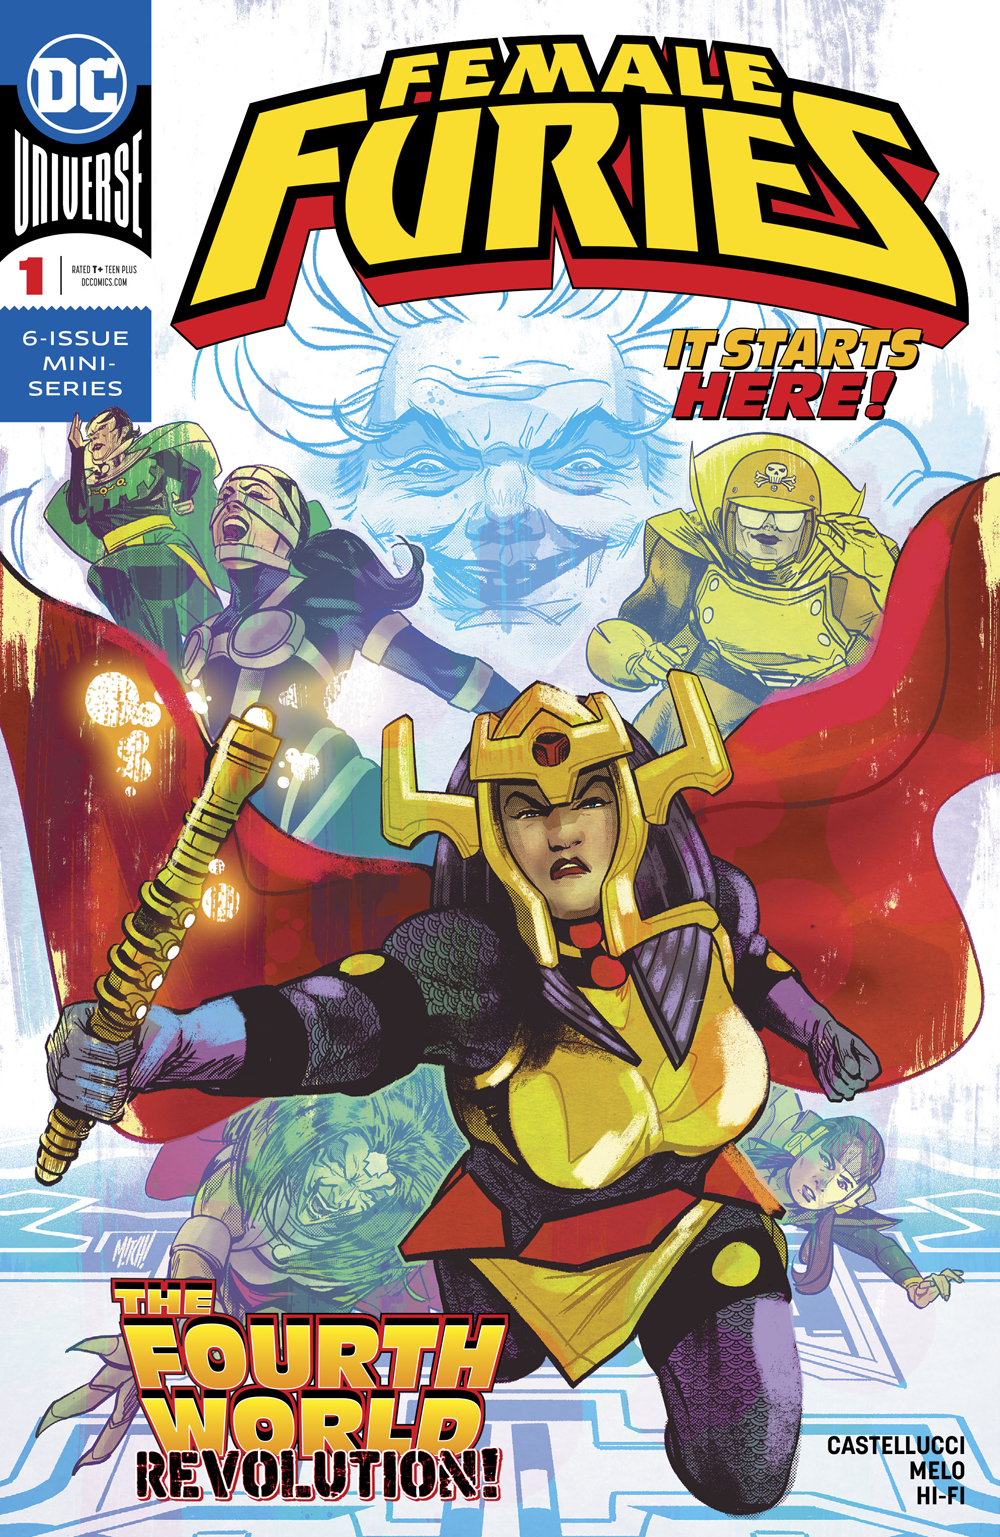 FEMALE FURIES #1 (OF 6)